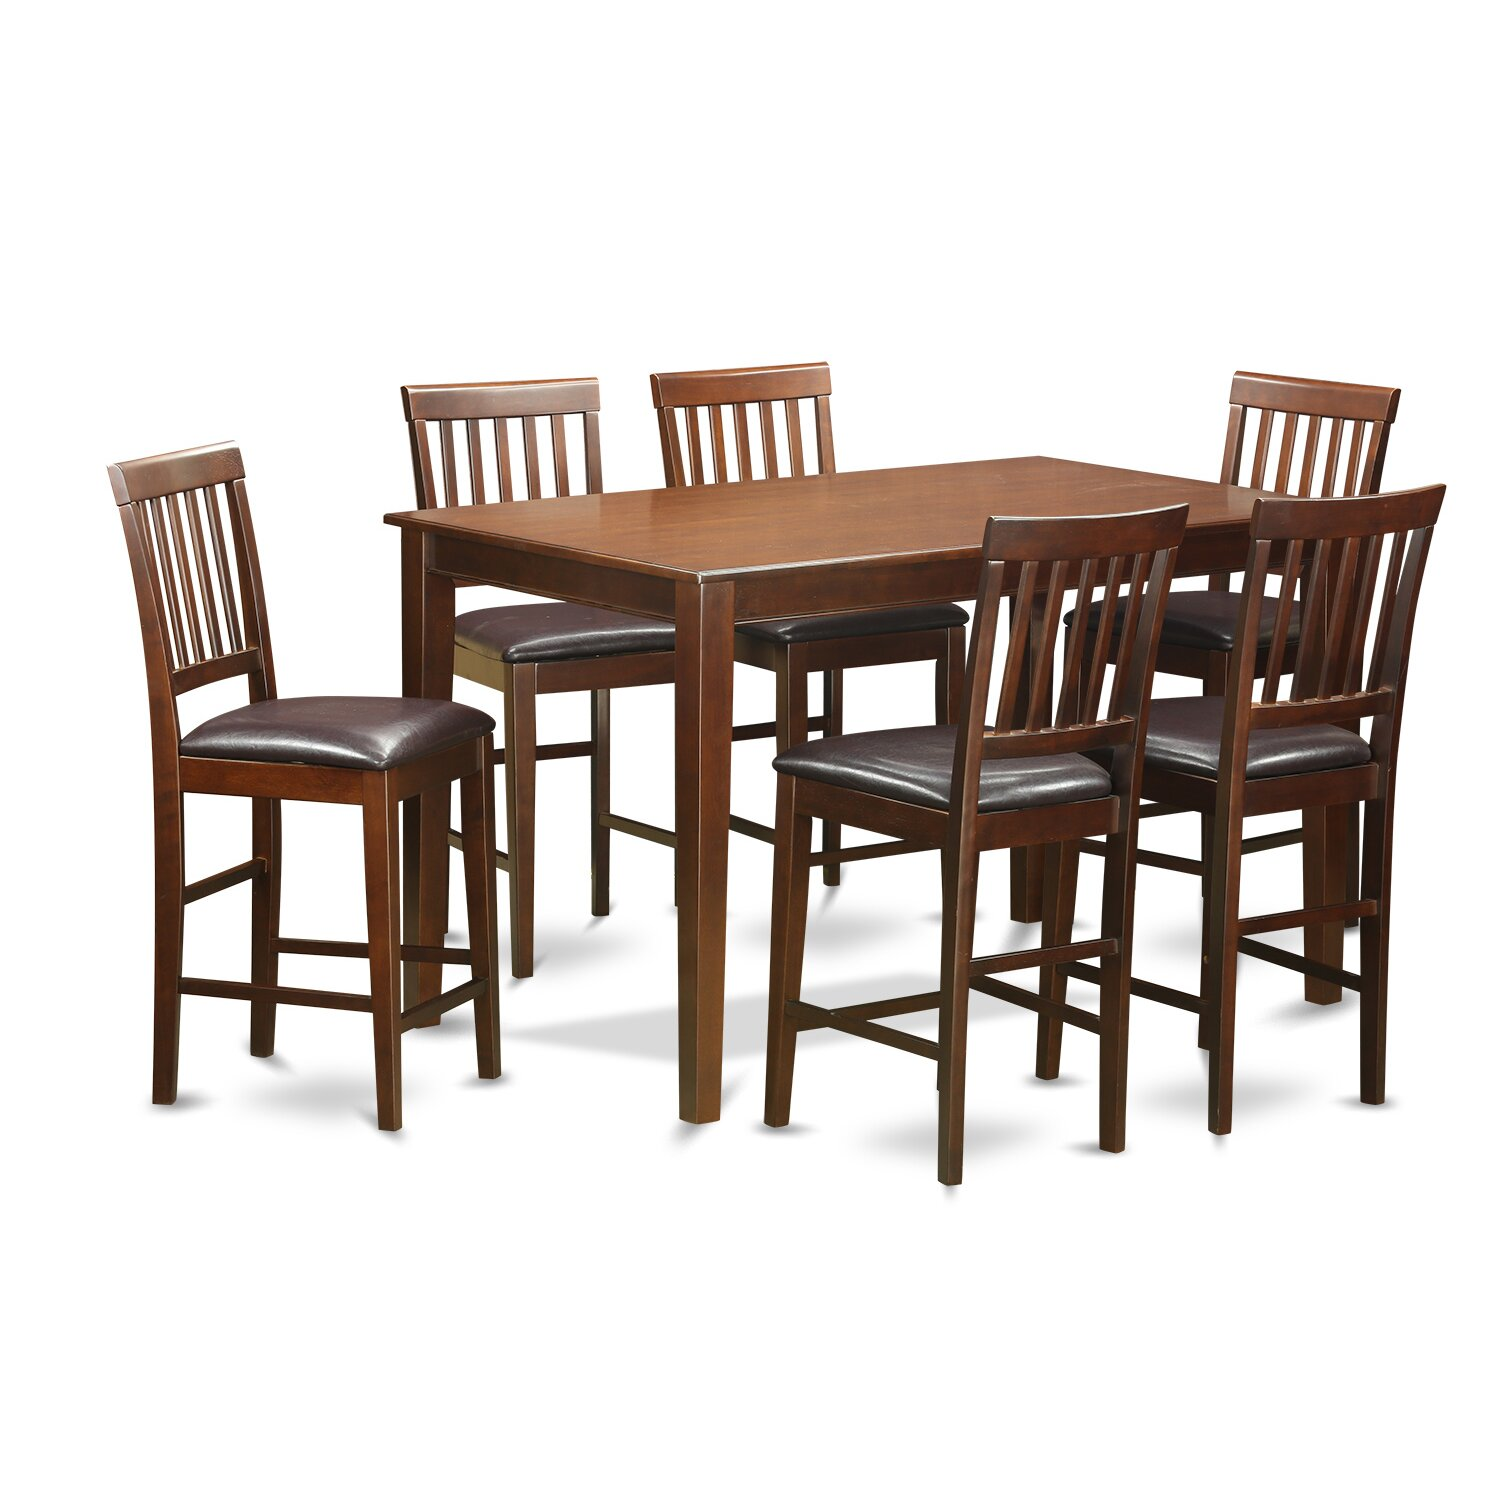 Wooden importers 7 piece counter height dining set wayfair for 7 piece dining set